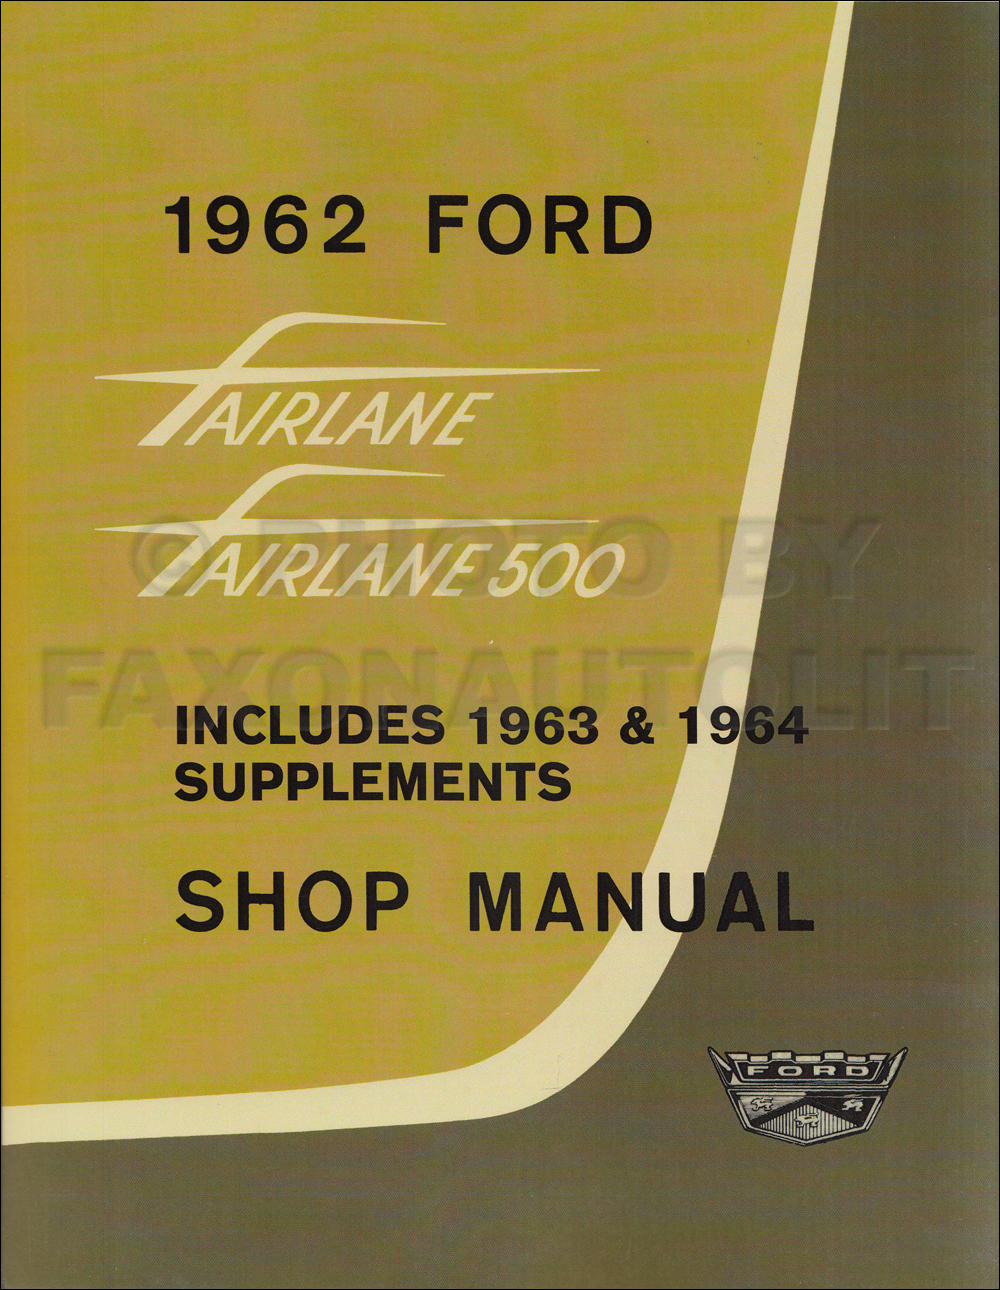 Fordfairlanerrm on 1962 Ford Fairlane Wiring Diagram